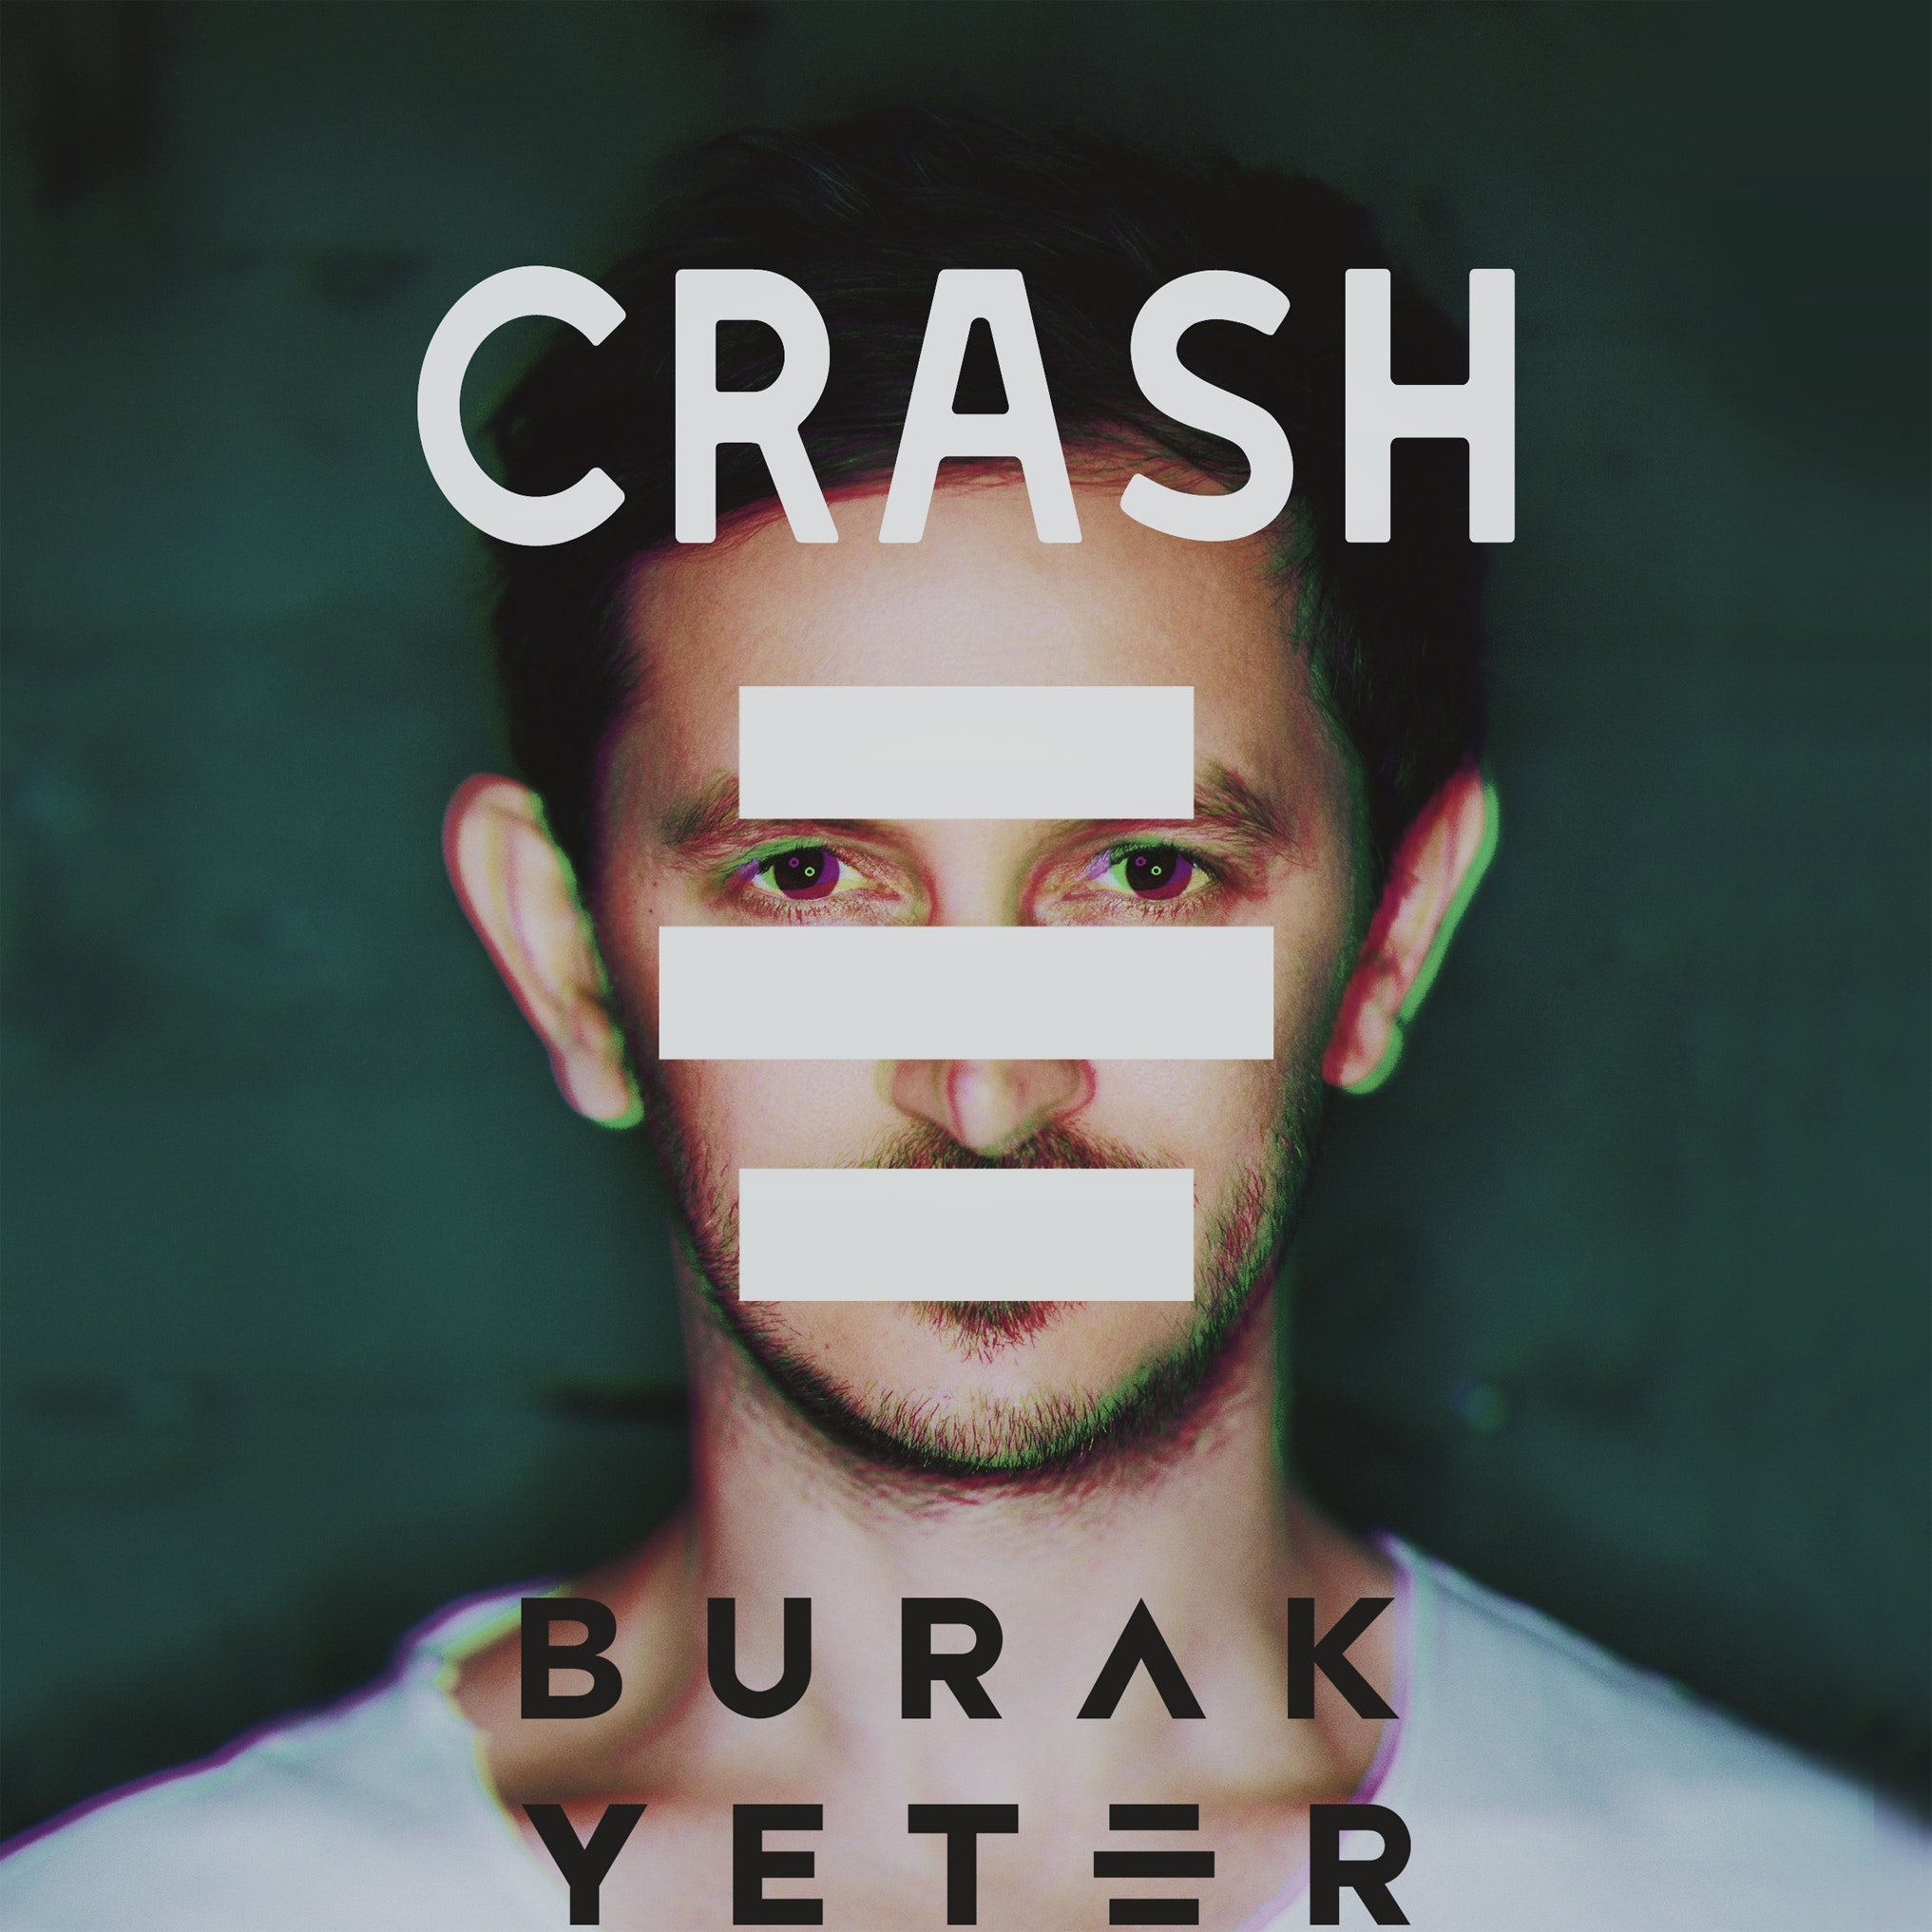 Burak Yeter Crash single cover